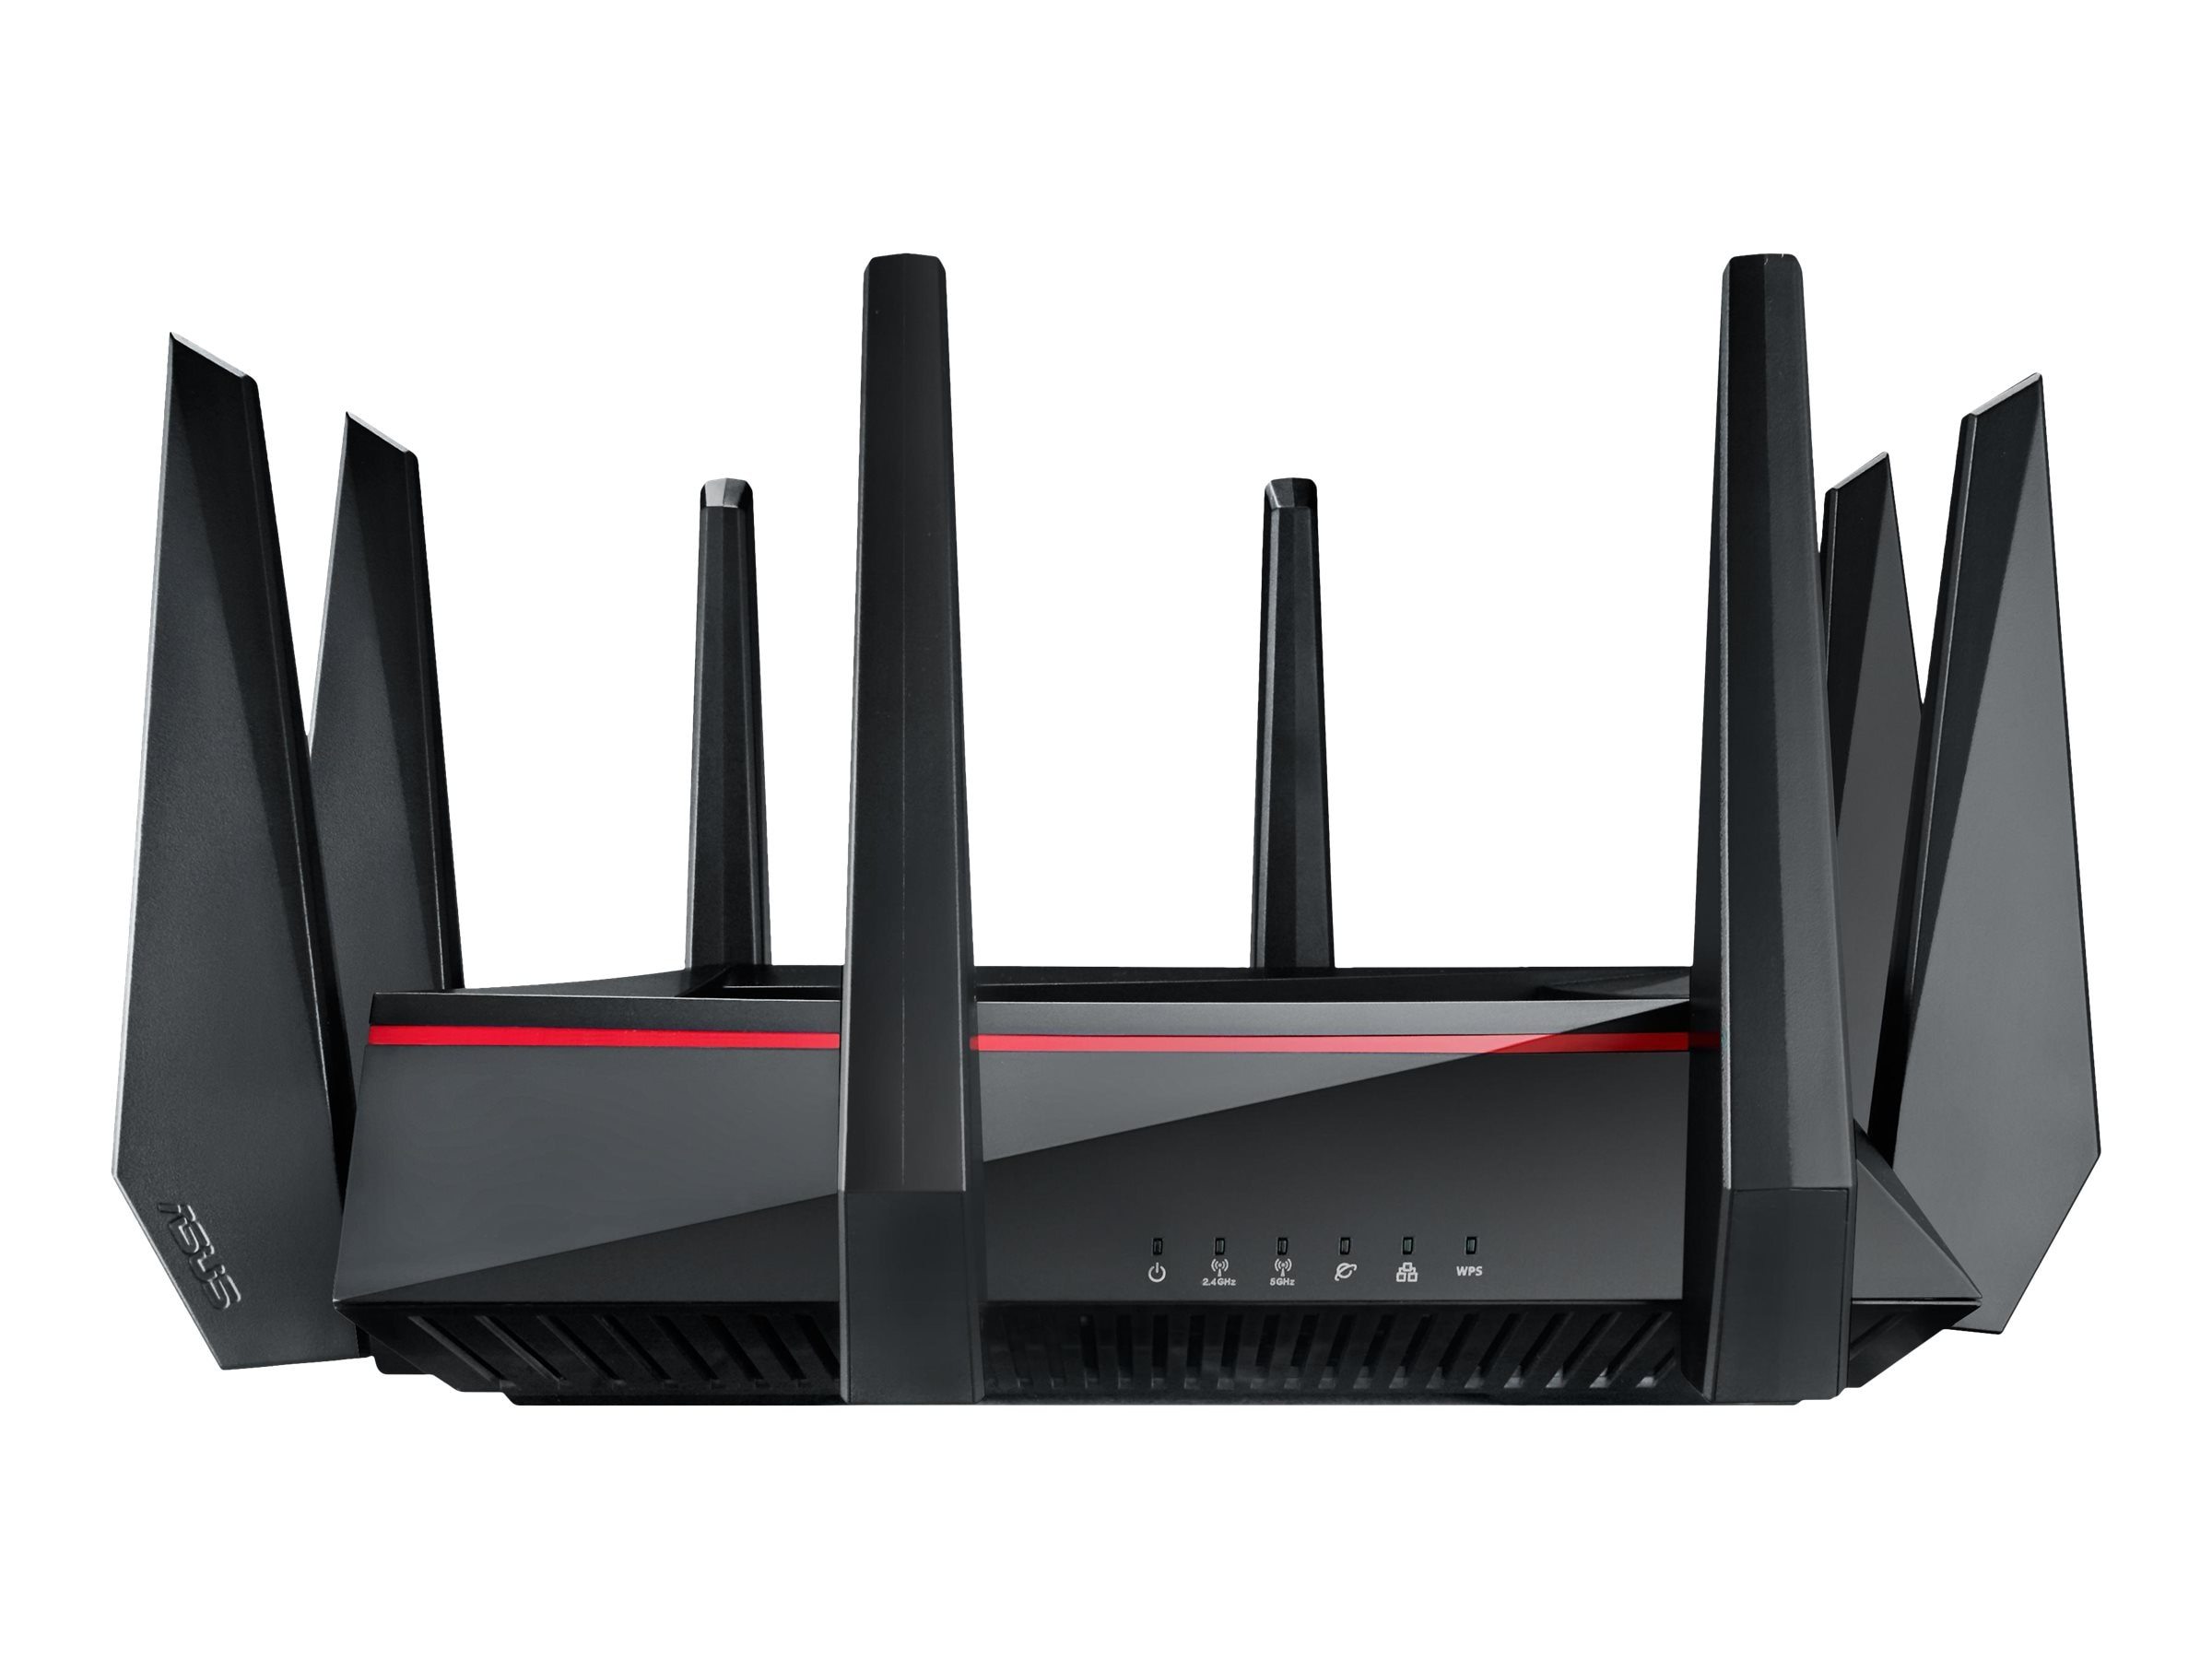 Asus Wireless-AC5300 Tri-Band Gigabit Router, RT-AC5300